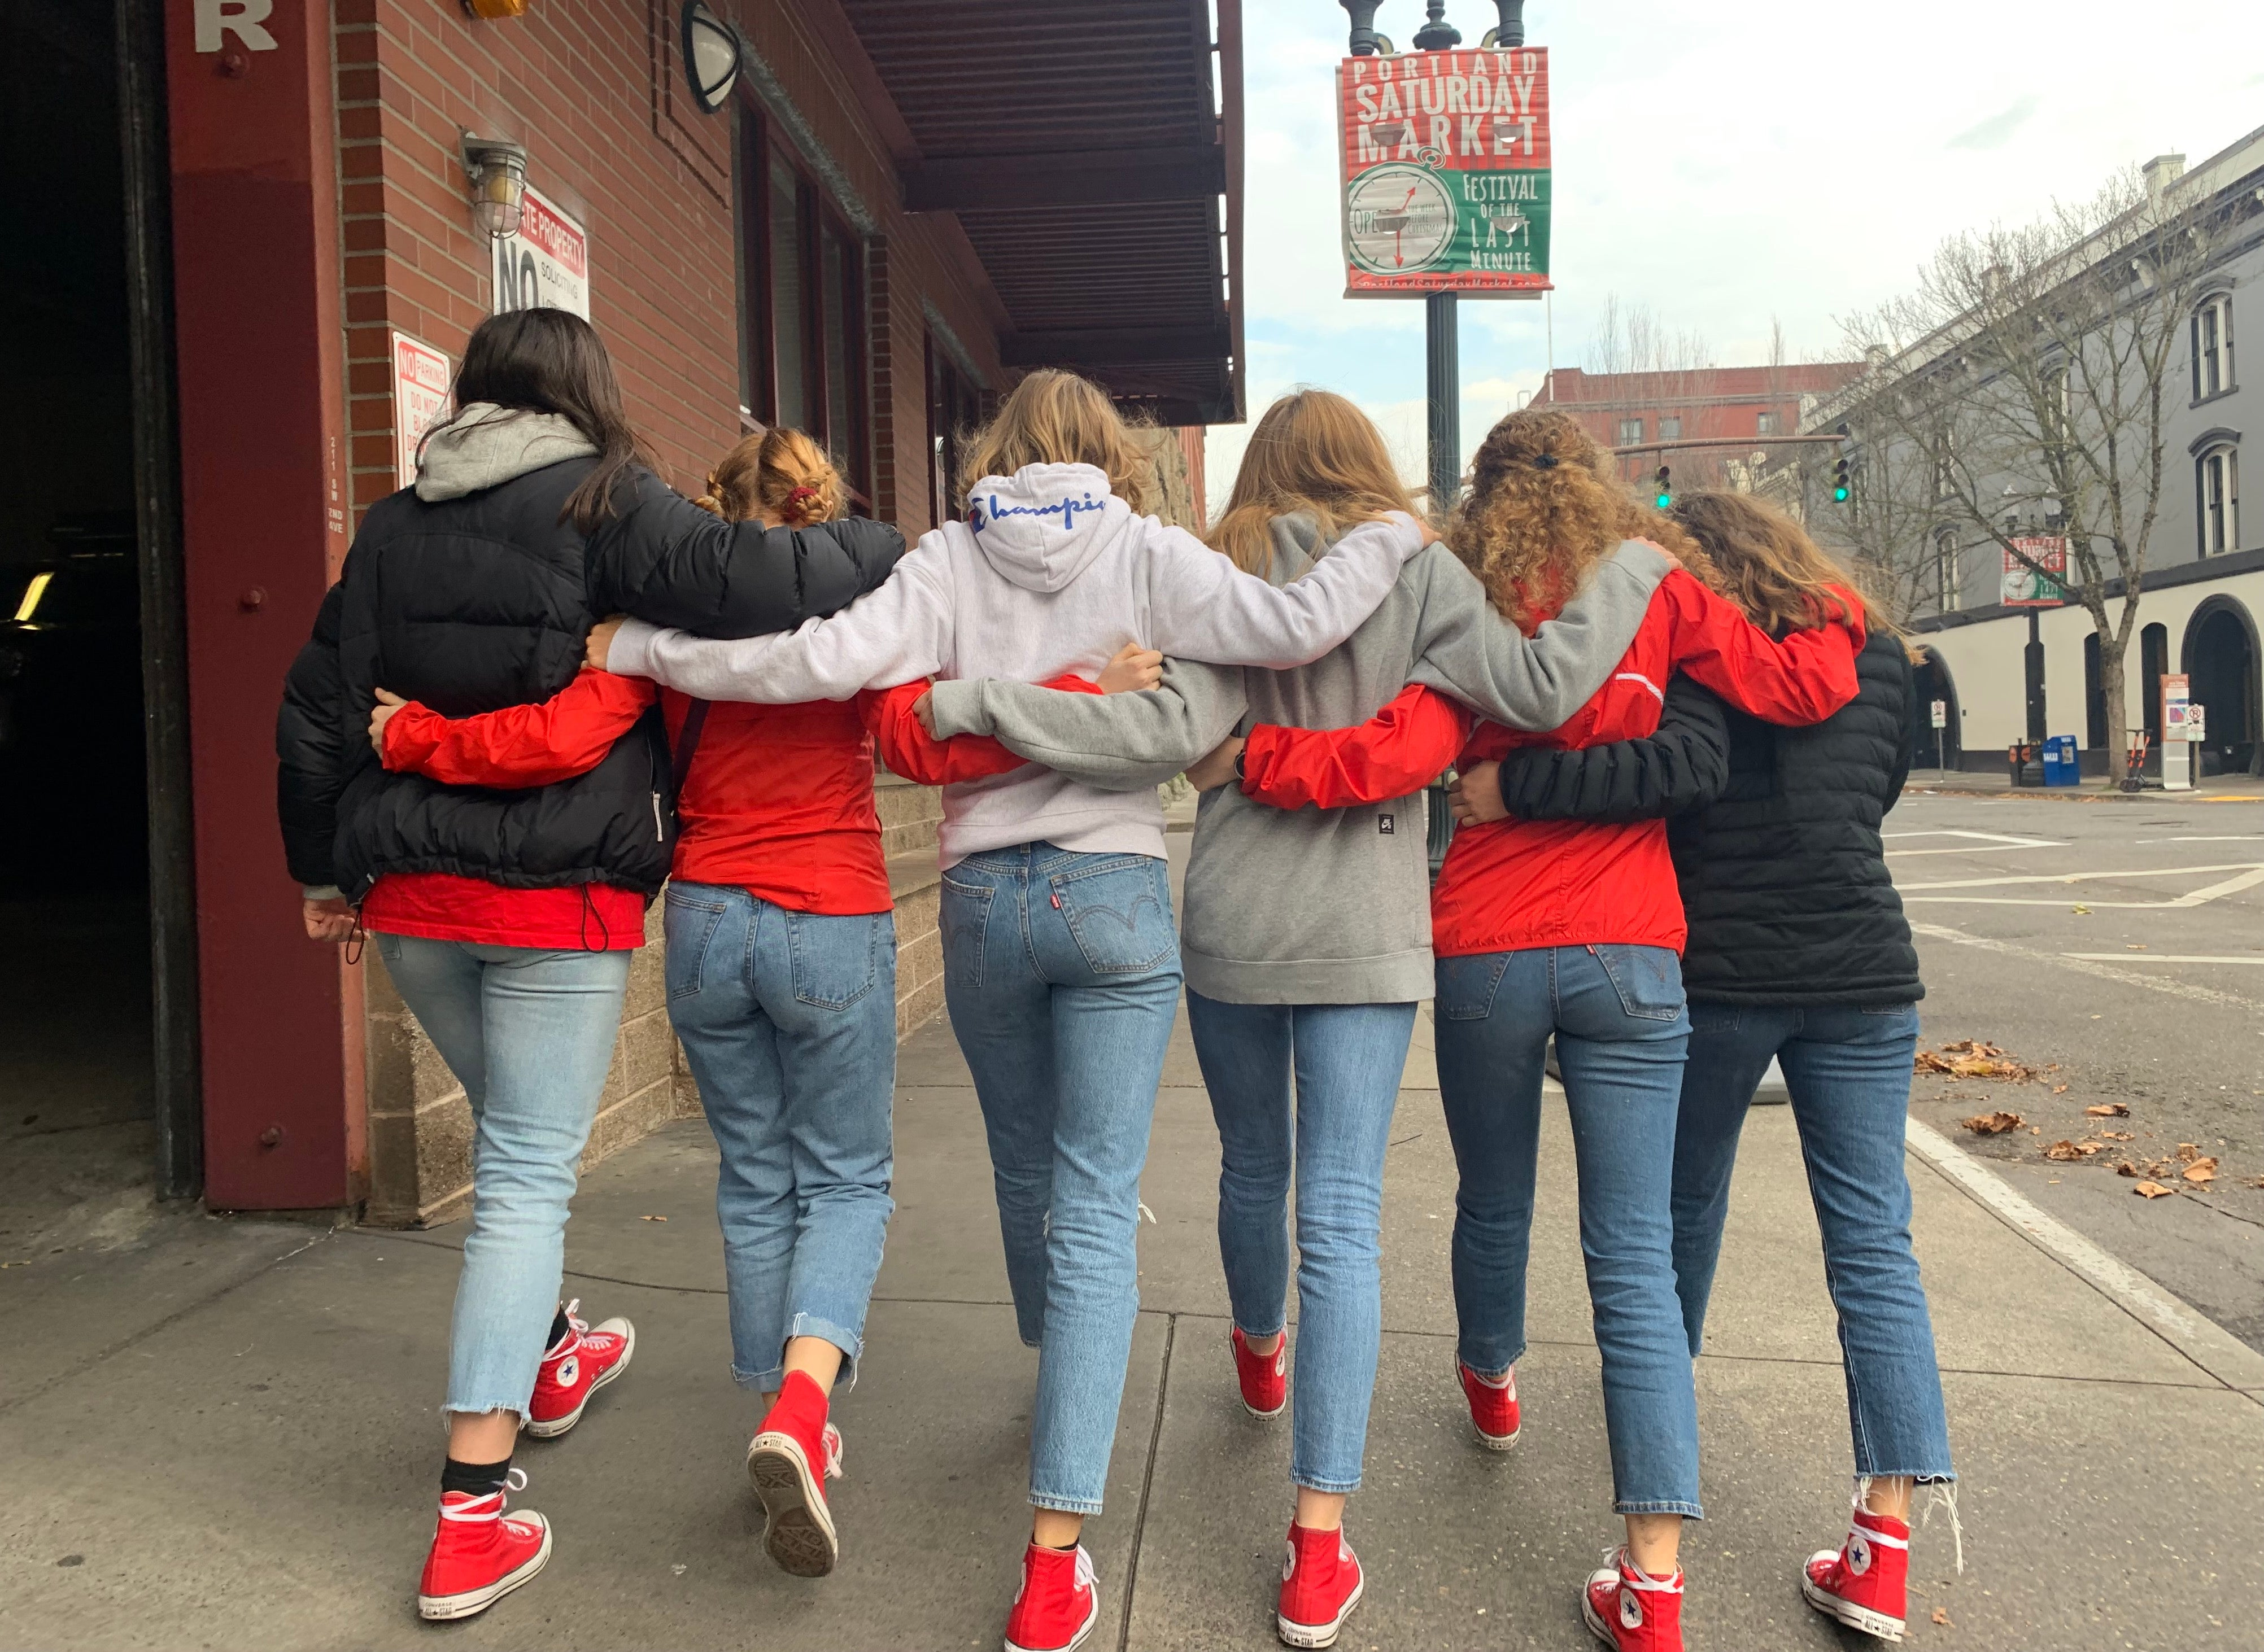 Girls hugging in a line on main street of Oregon town.